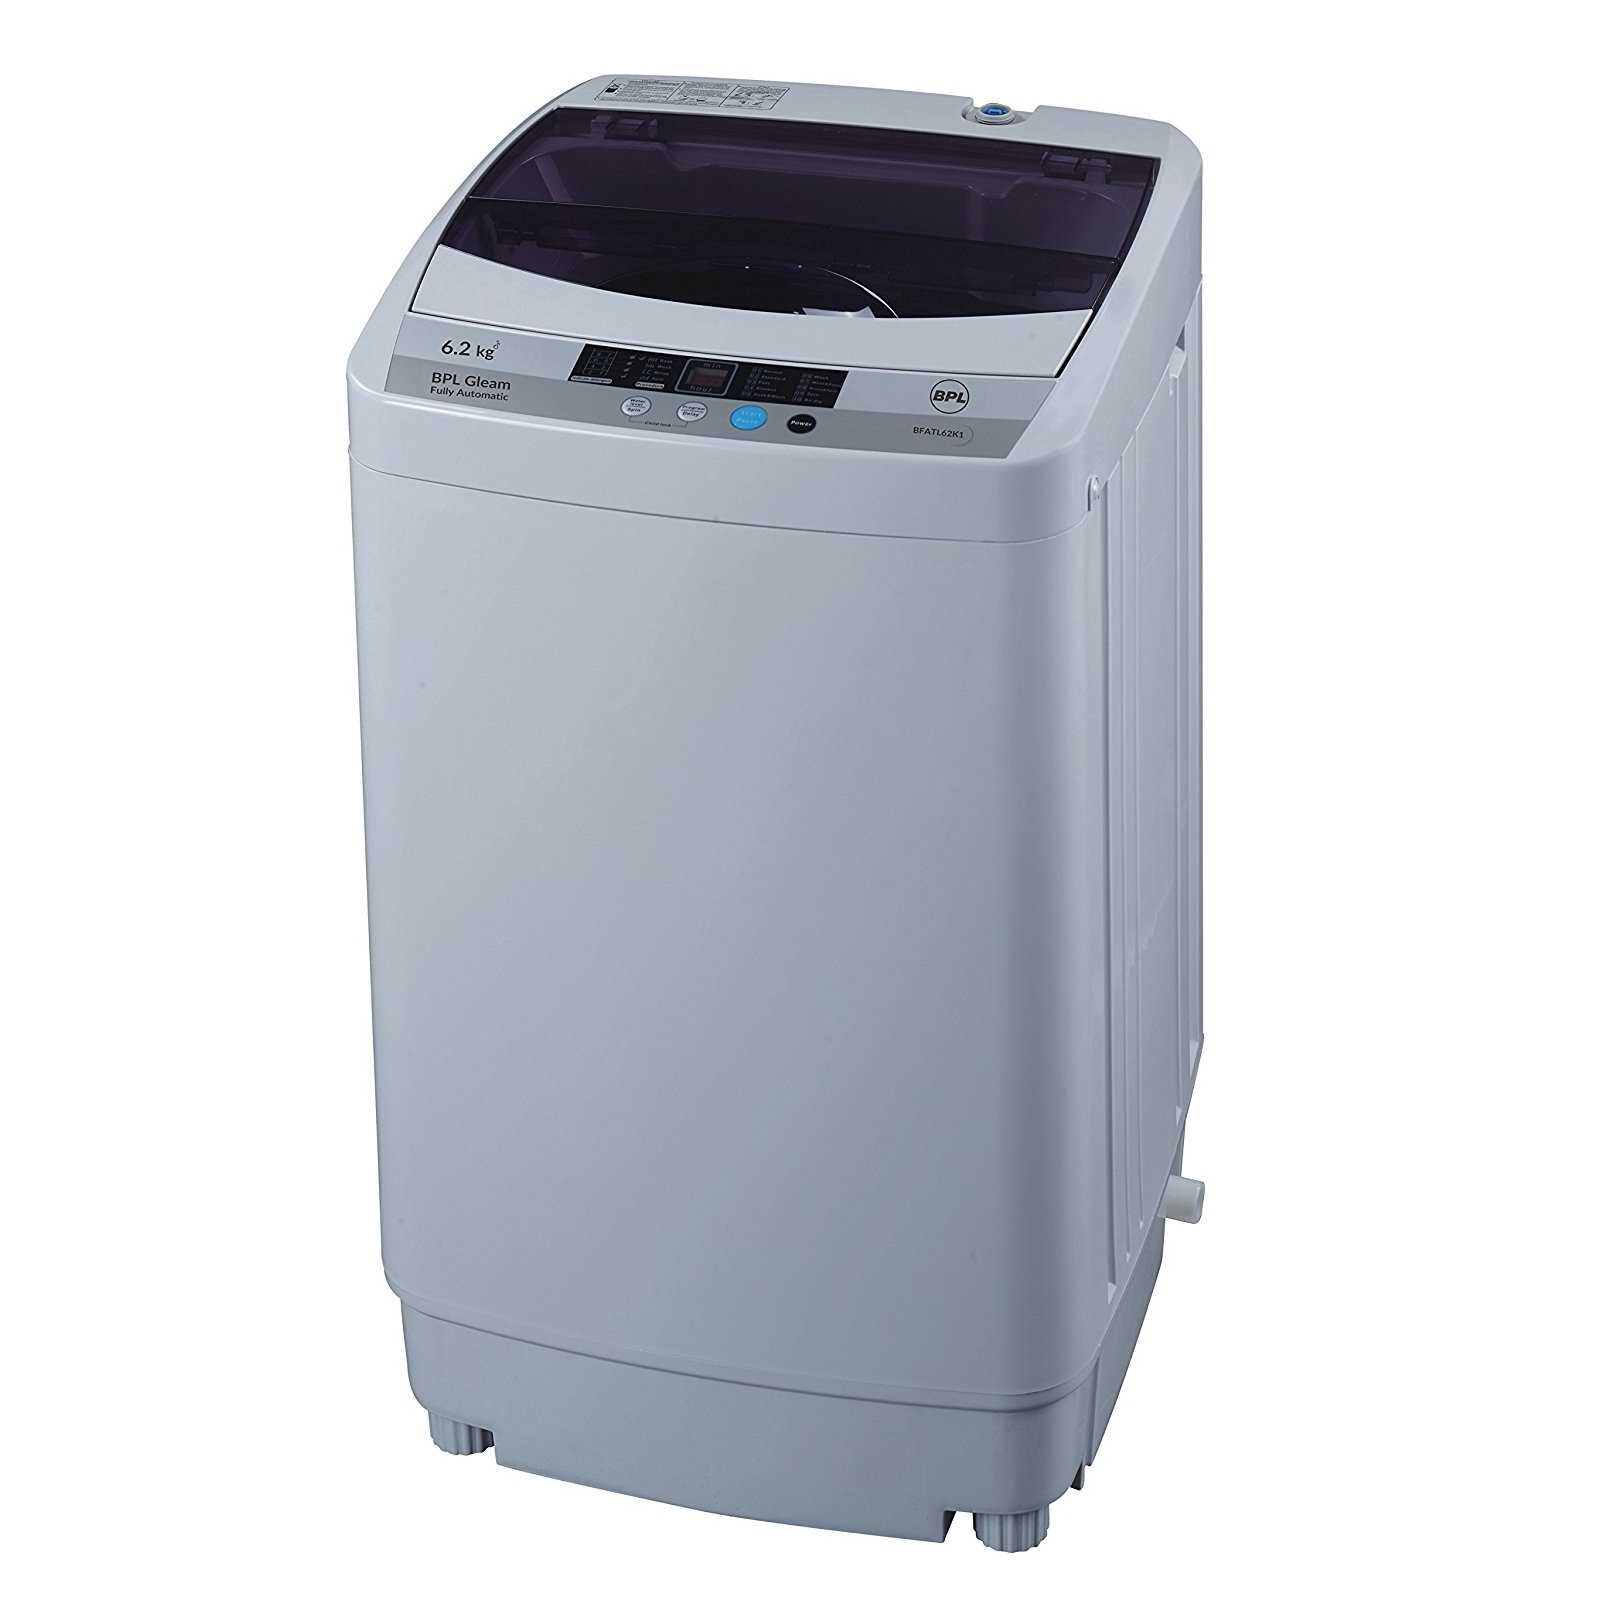 BPL BFATL62K1 6.2 Kg Fully Automatic Top Loading Washing Machine